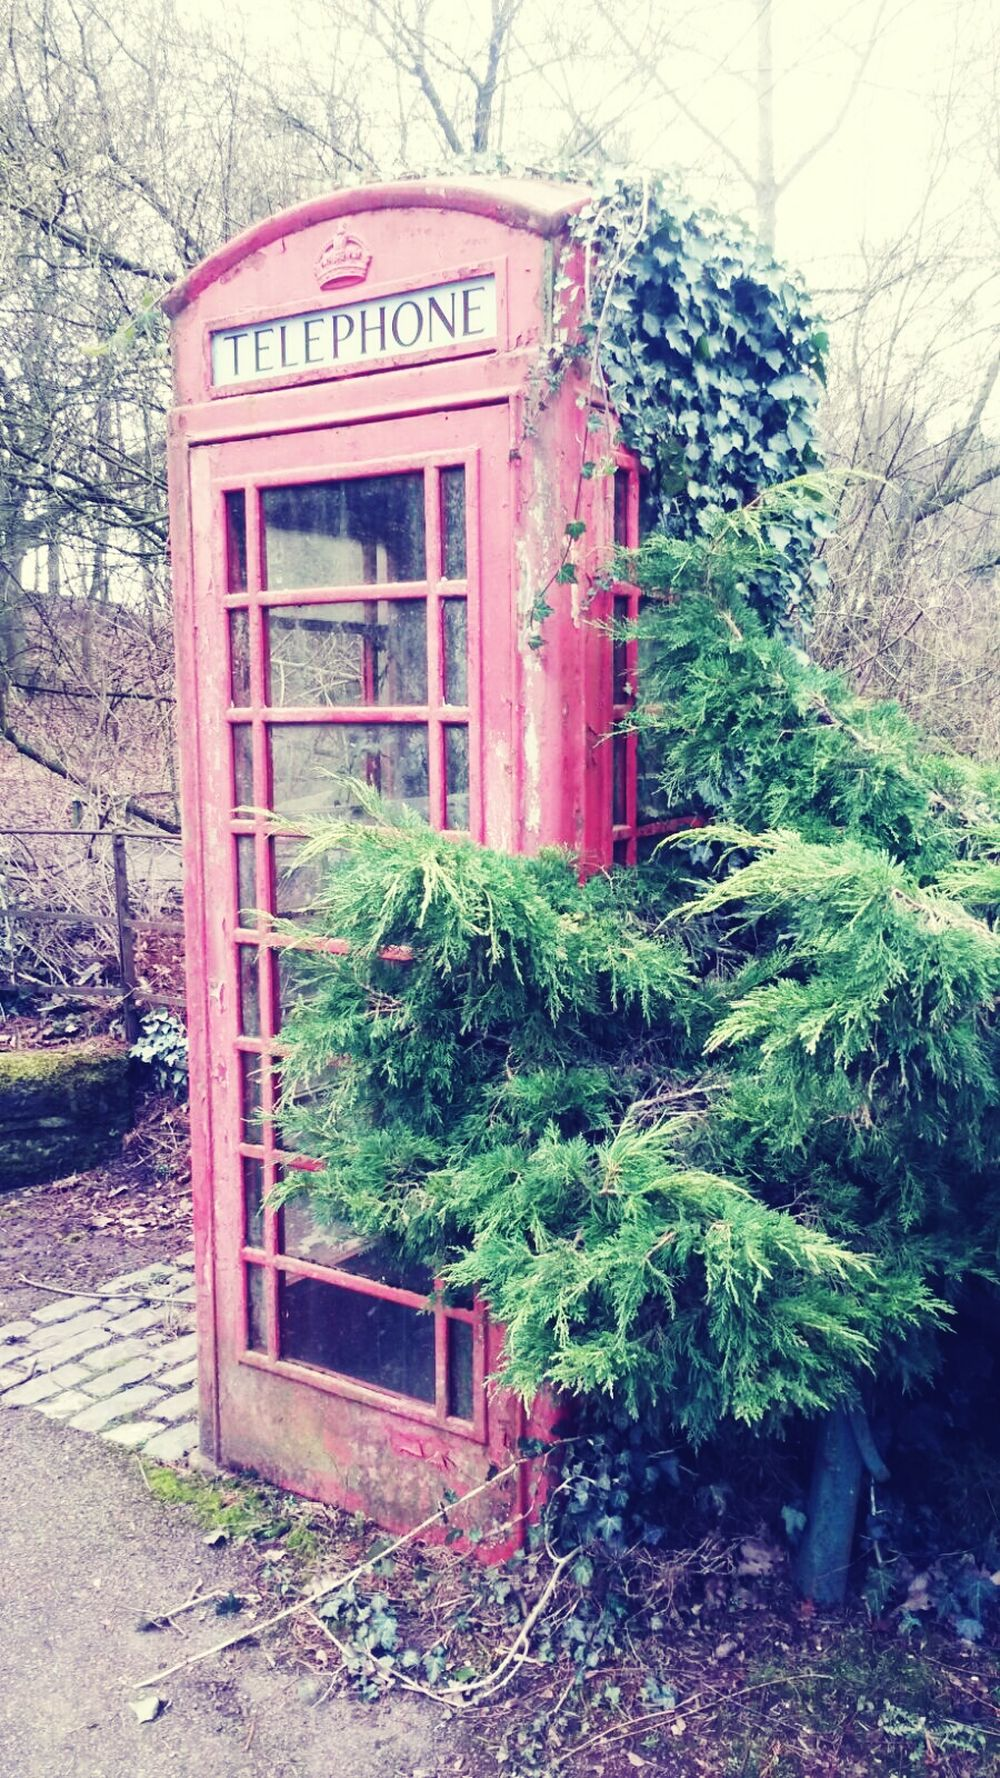 Outdoors Growth Plant Communication Telephone Booth Red Telephone Box Retro Telephone Countryside Grass No People British Scenes Nature Countryside